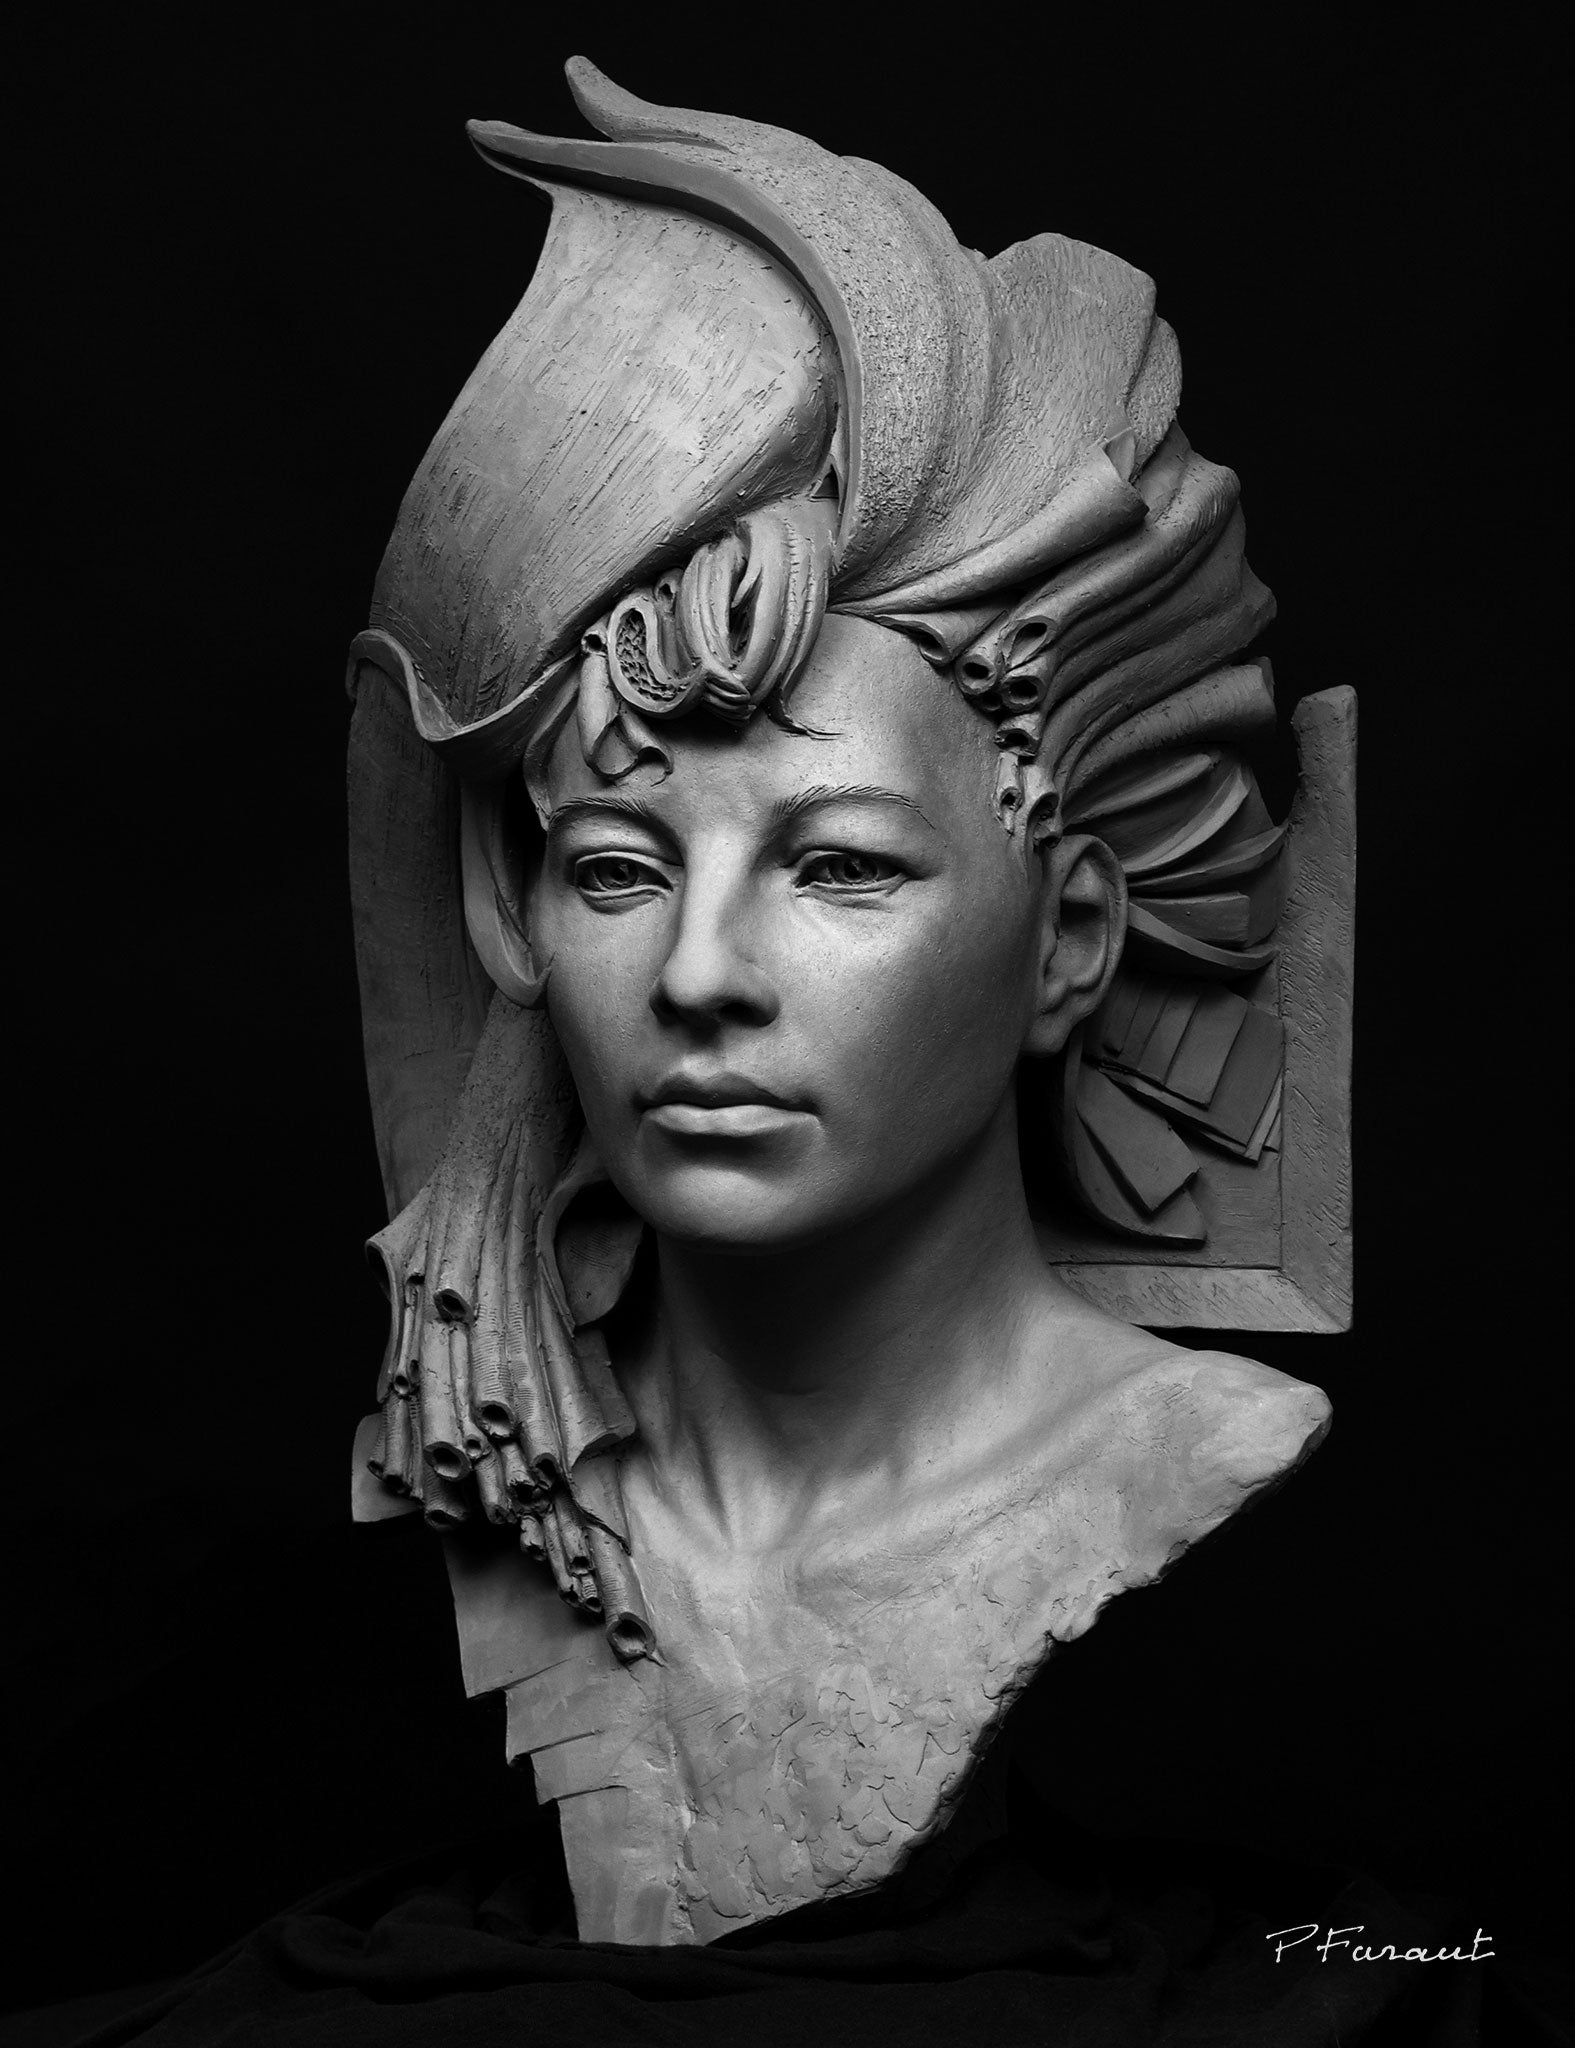 Stylized clay portrait of woman with abstract hair Queen Bee by Philippe Faraut